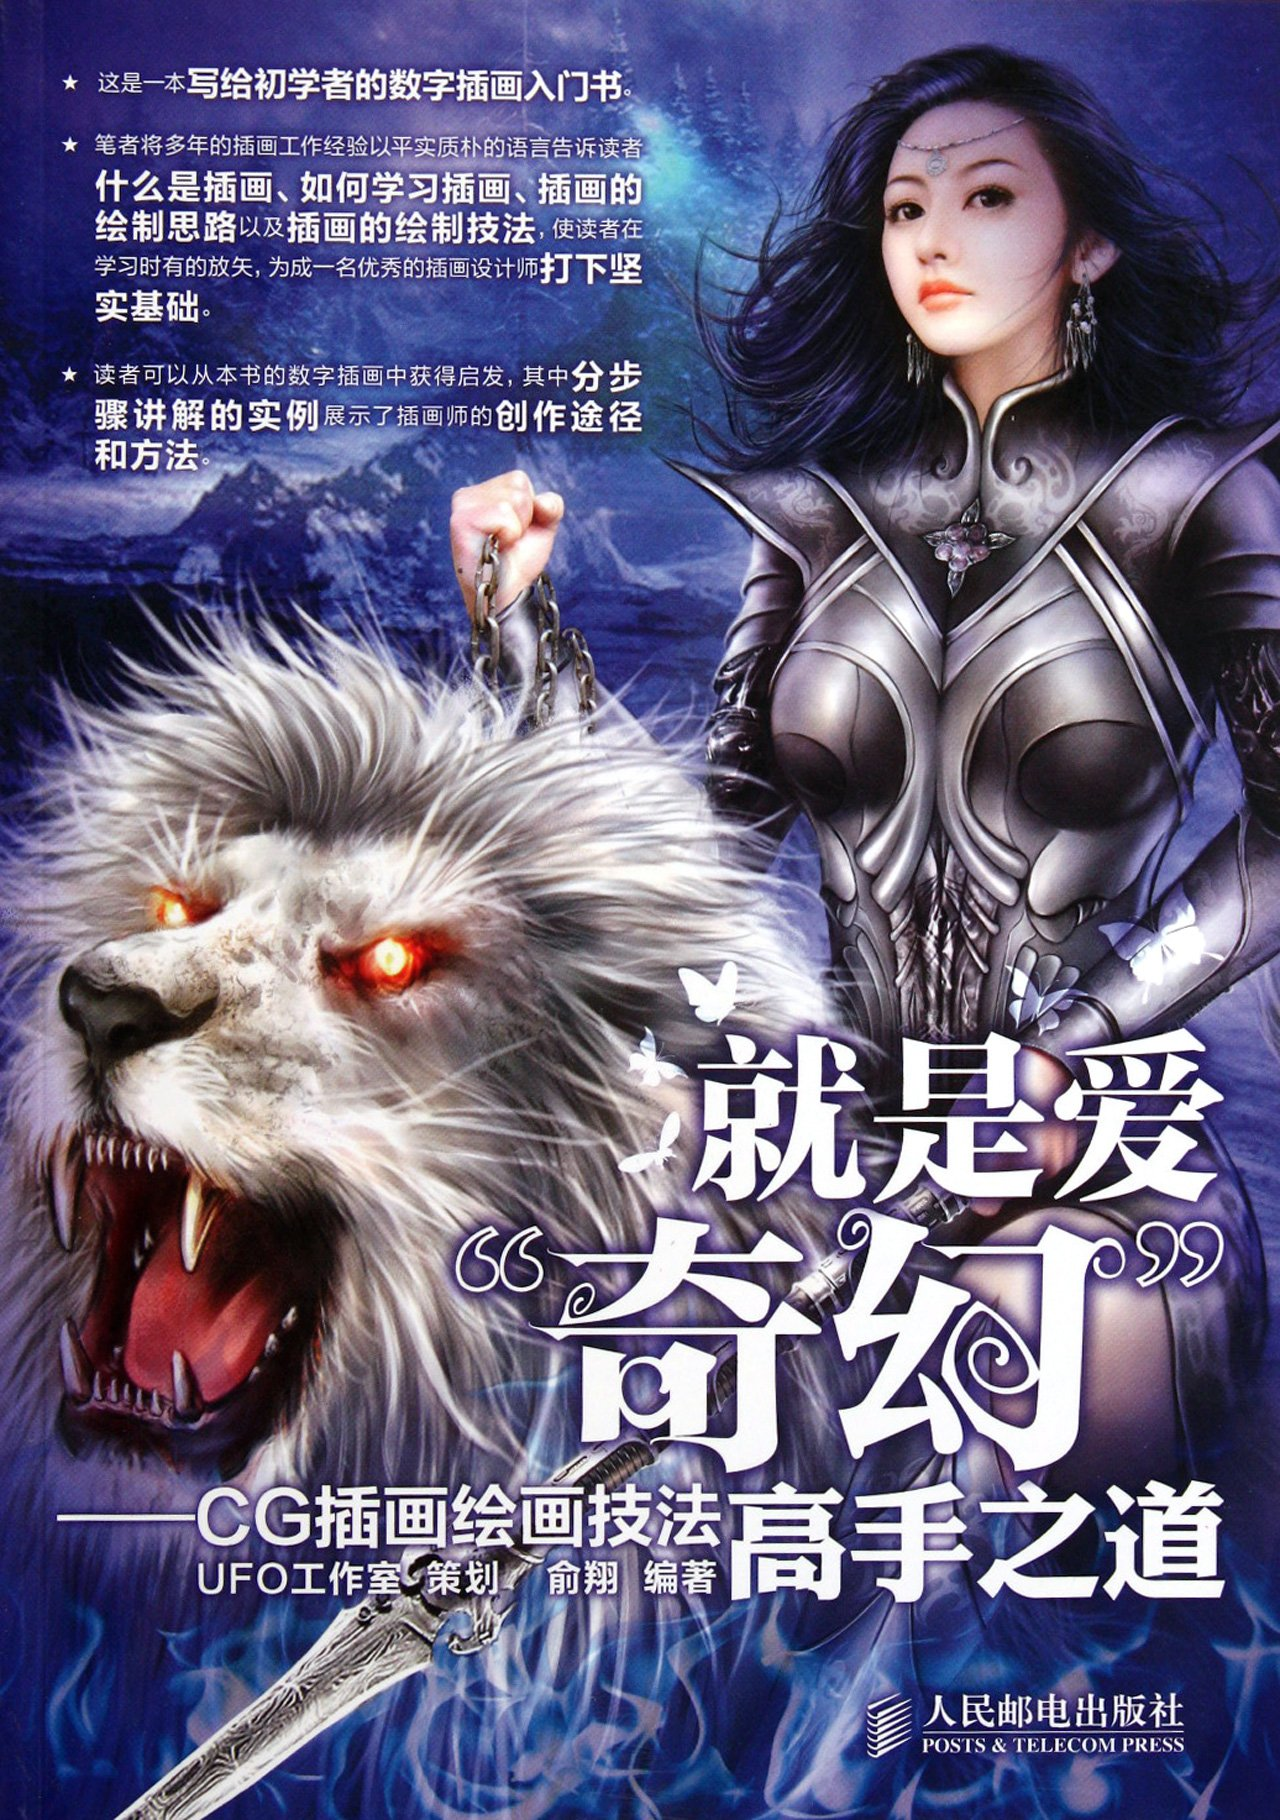 Read Online Do Love Fantasy-Expert Method of CG Inllustration and Graphic Technique (Chinese Edition) ebook